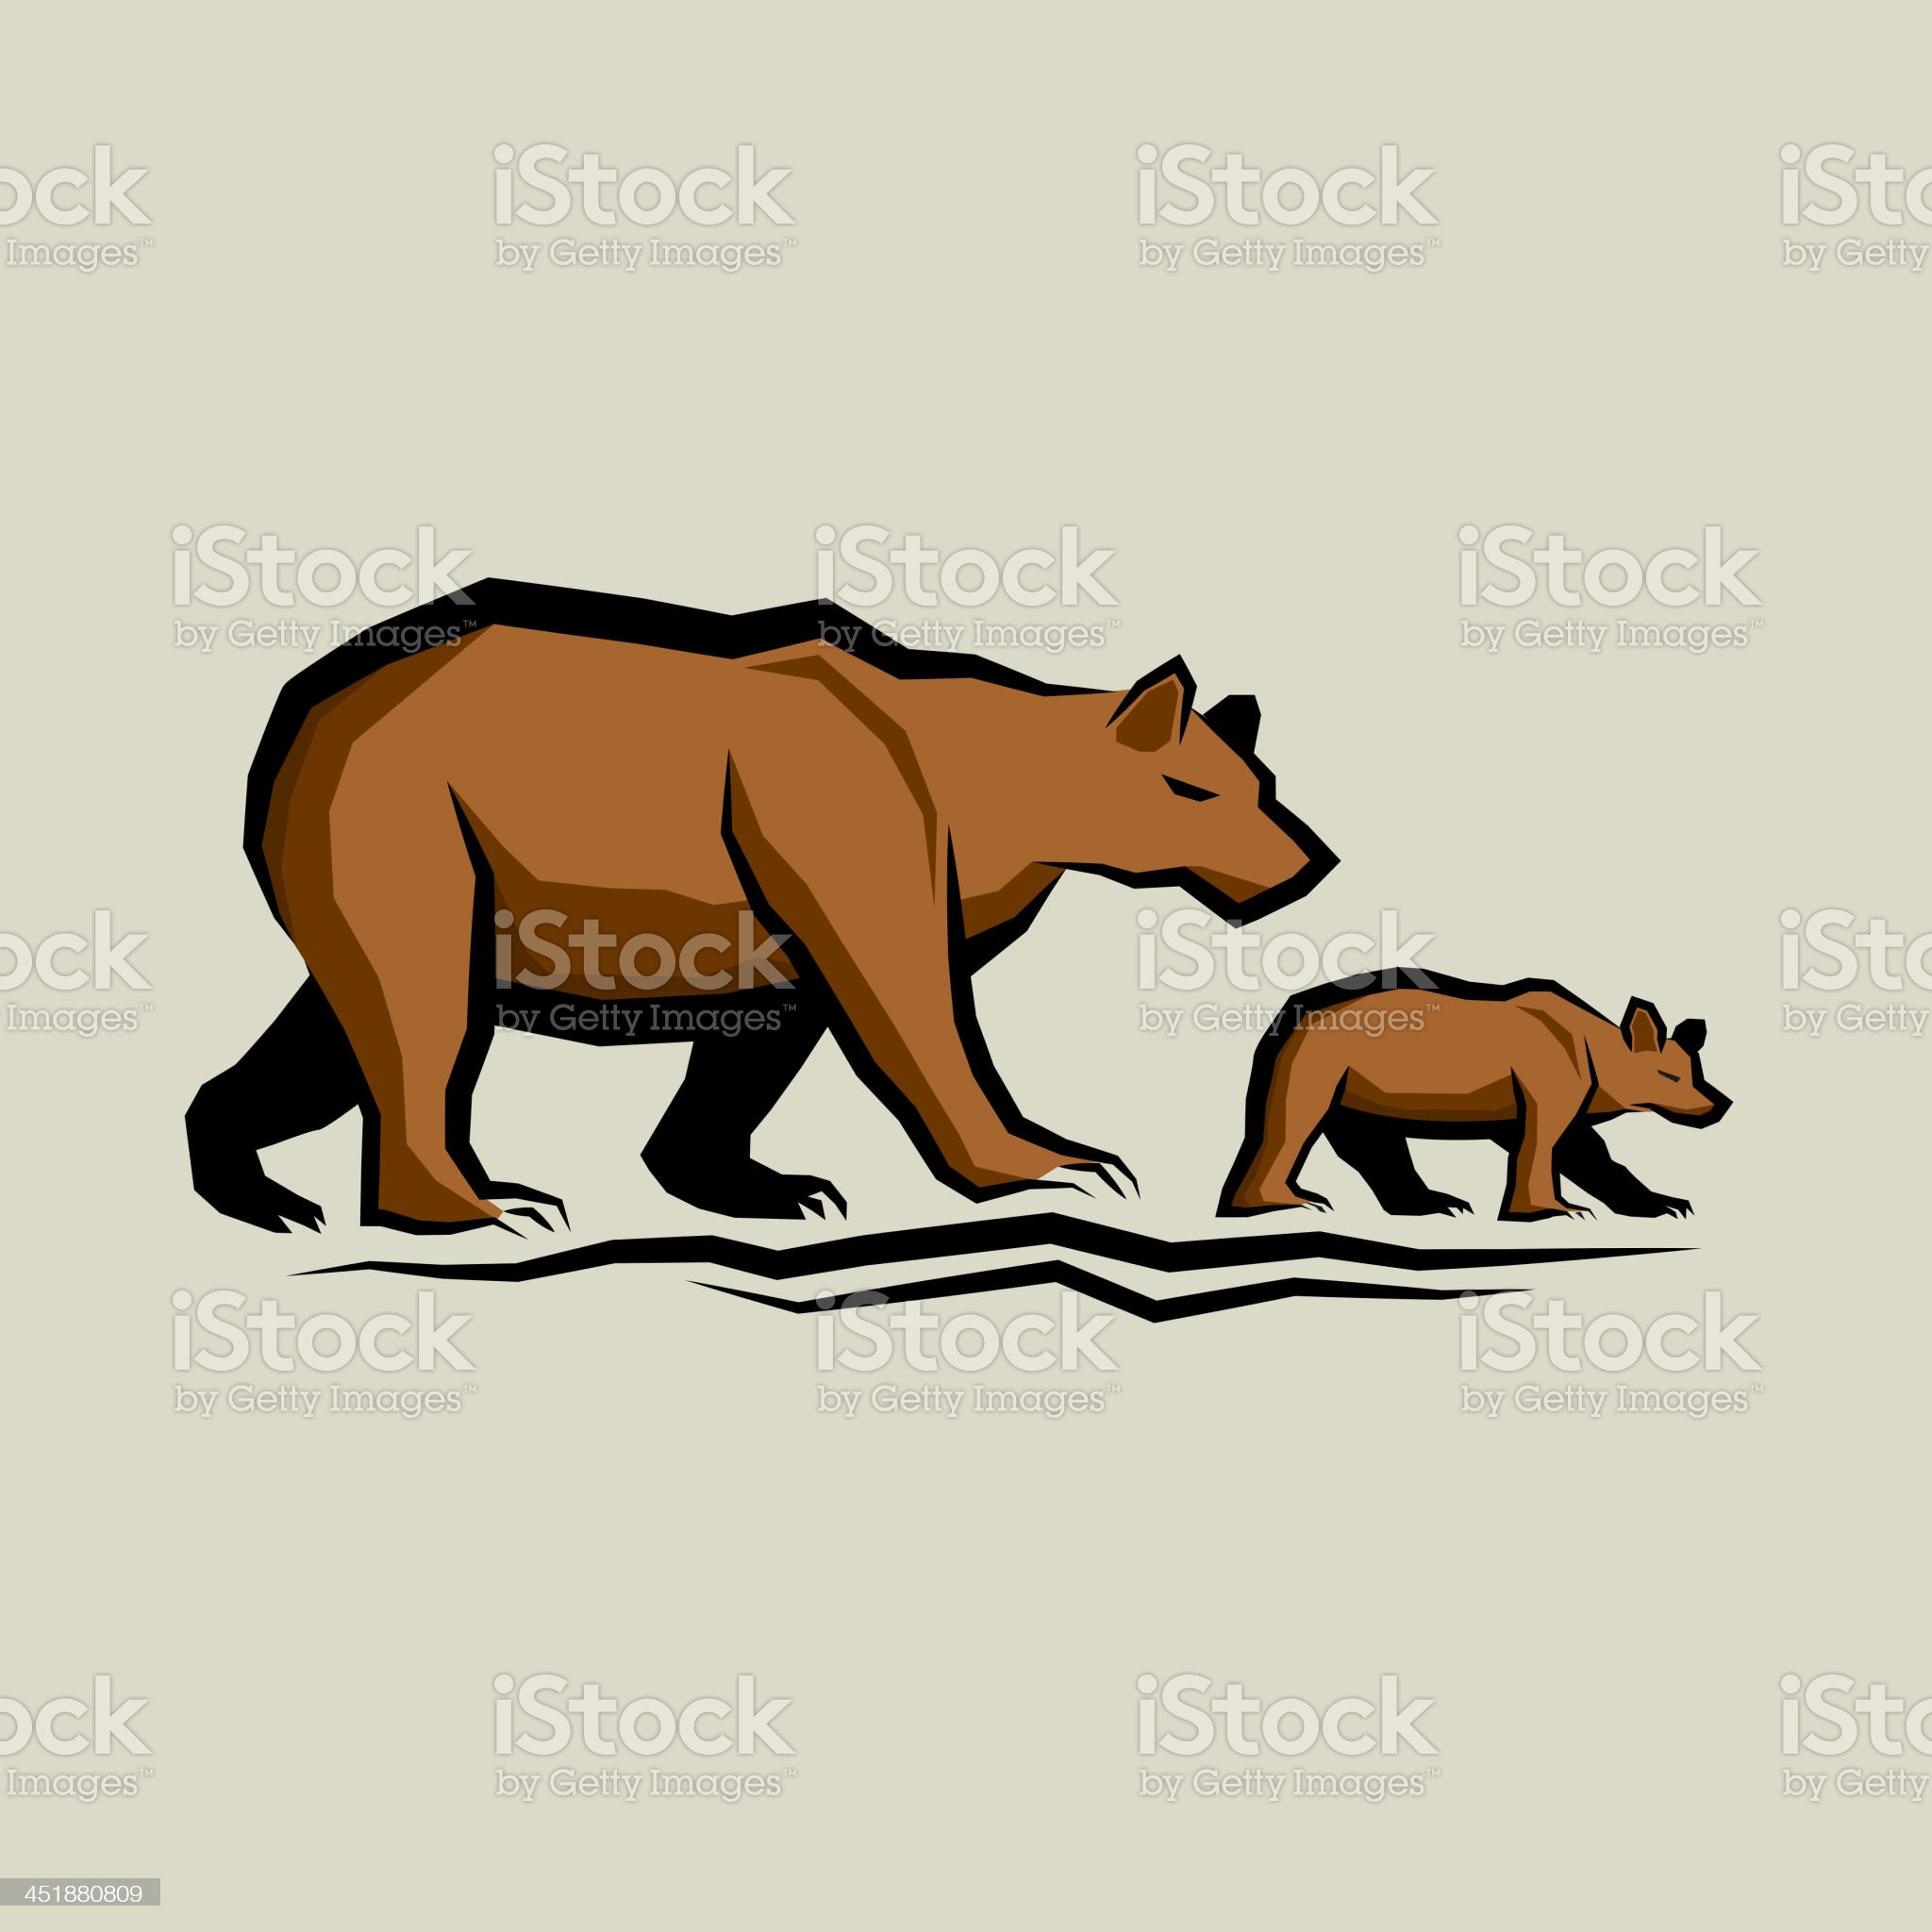 Brown Bear and Cub royalty-free stock vector art